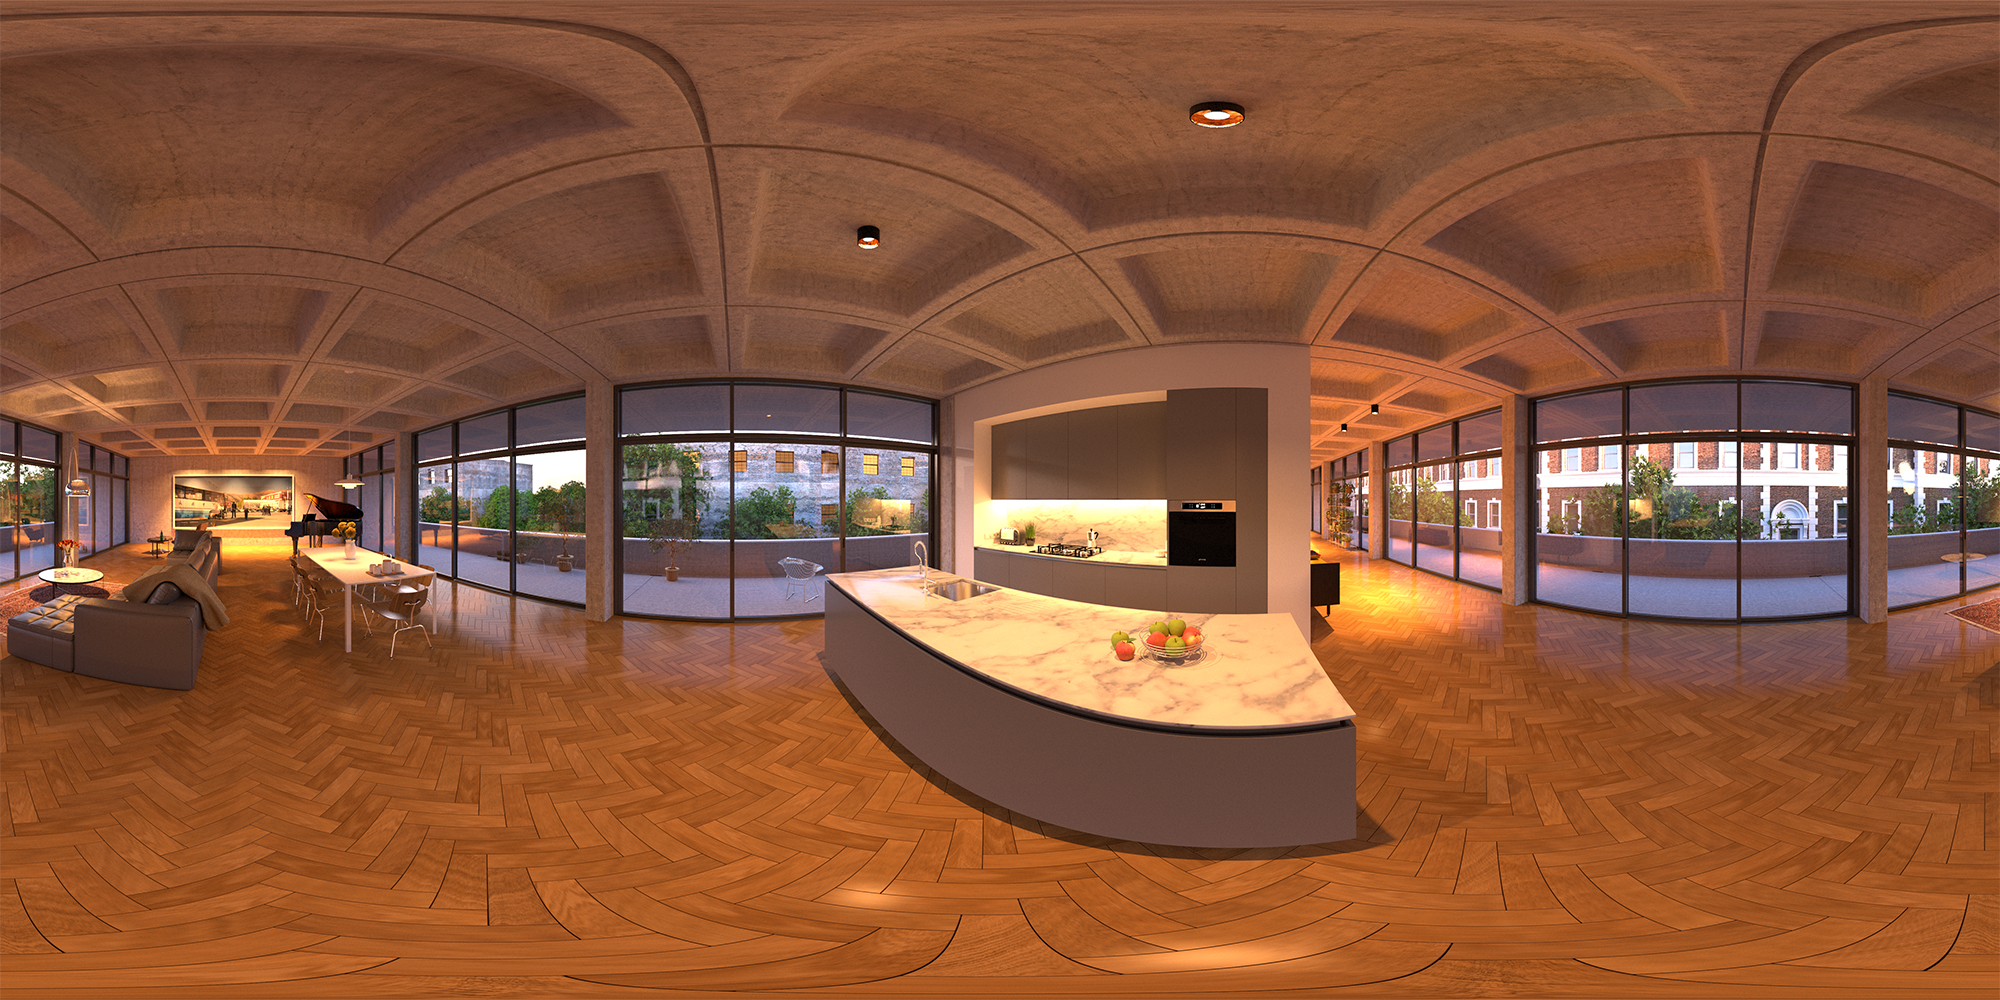 360 Image for Facbook created with 3DS Max and Vray